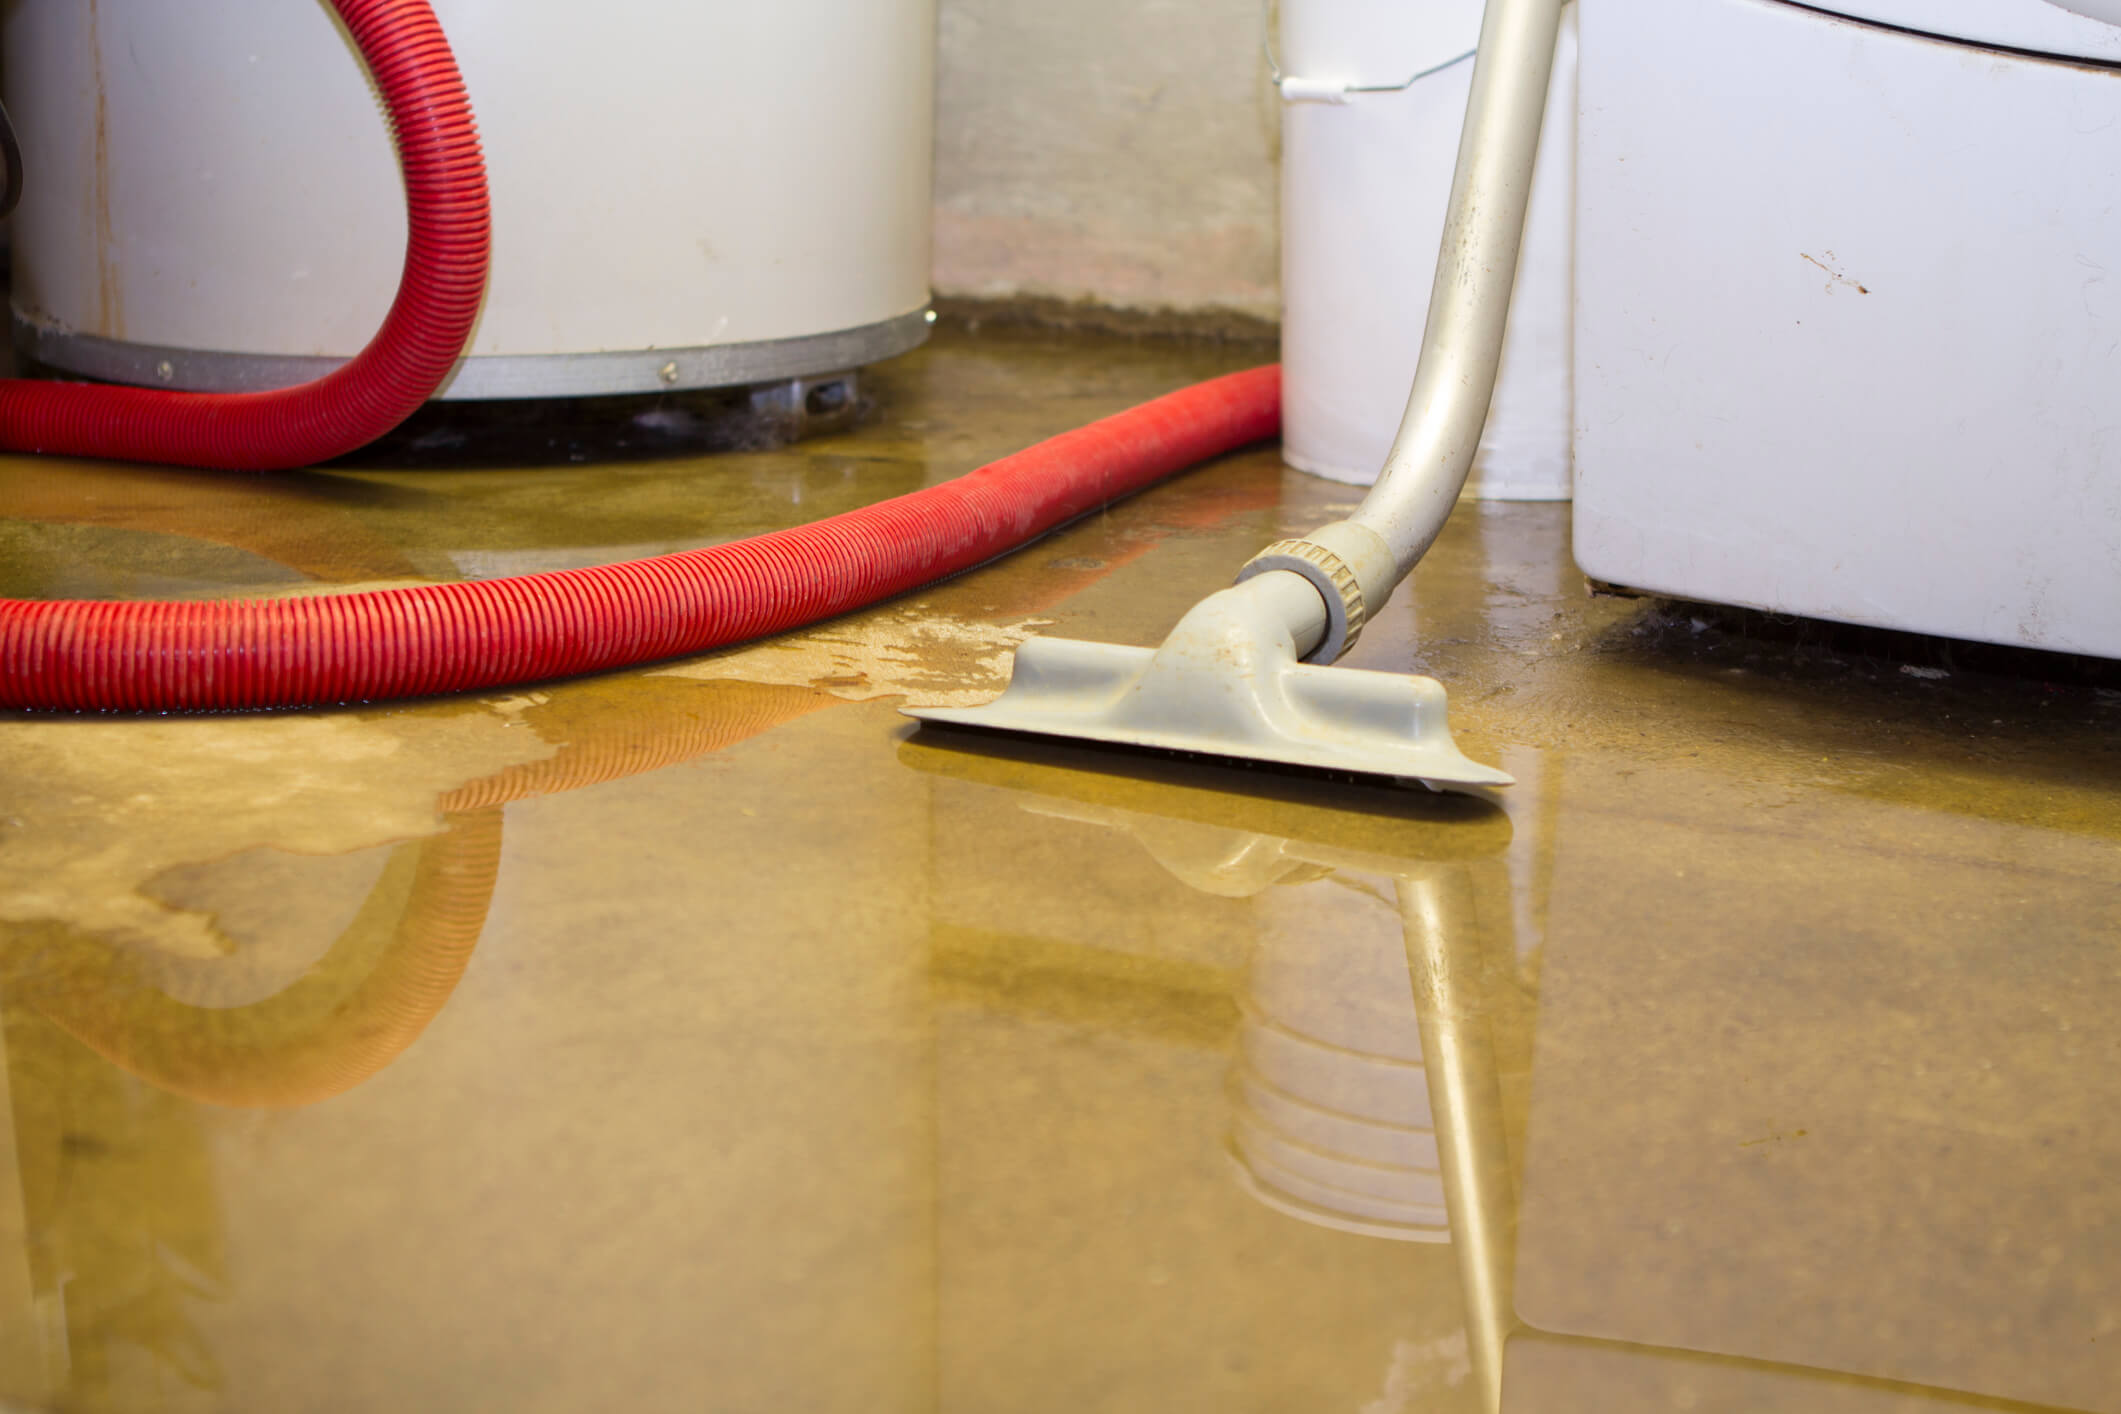 What You Should — And Shouldn't — Do After Water Damage